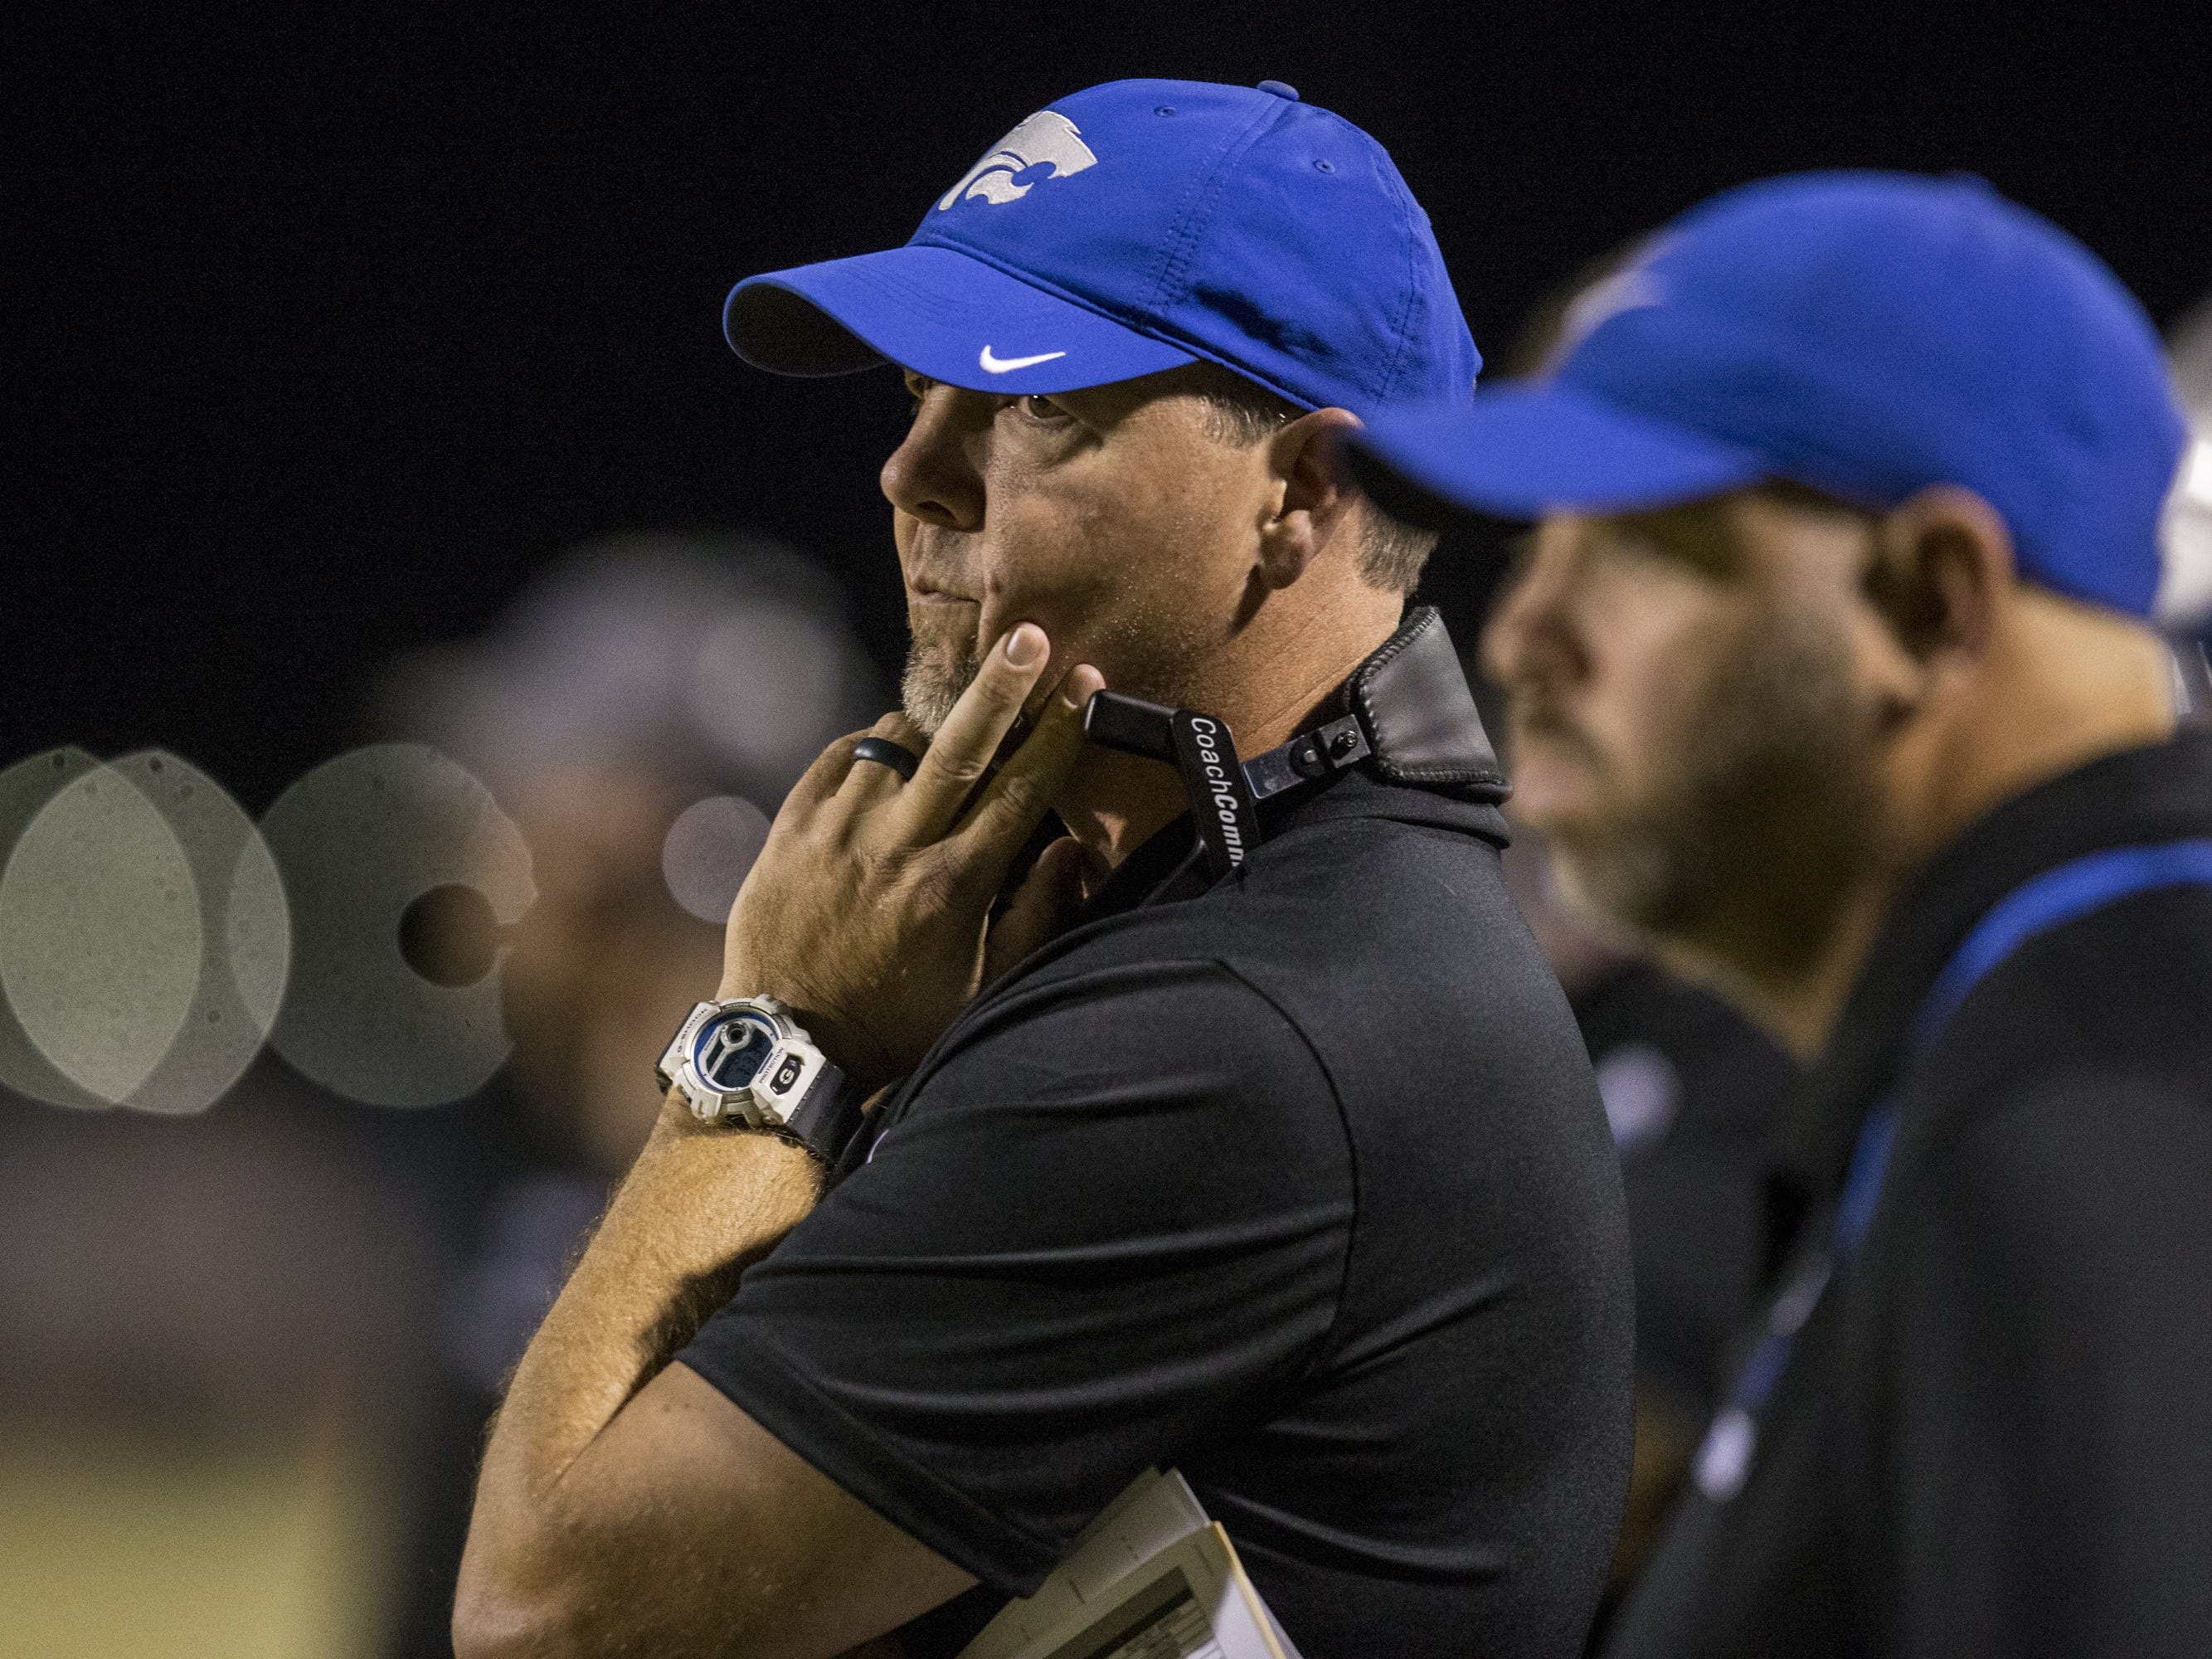 Mesquite head coach Chad DeGrenier watches the game against Saguaro in the first half on Friday, Oct. 26, 2018, at Mesquite High School in Gilbert, Ariz.  #azhsb